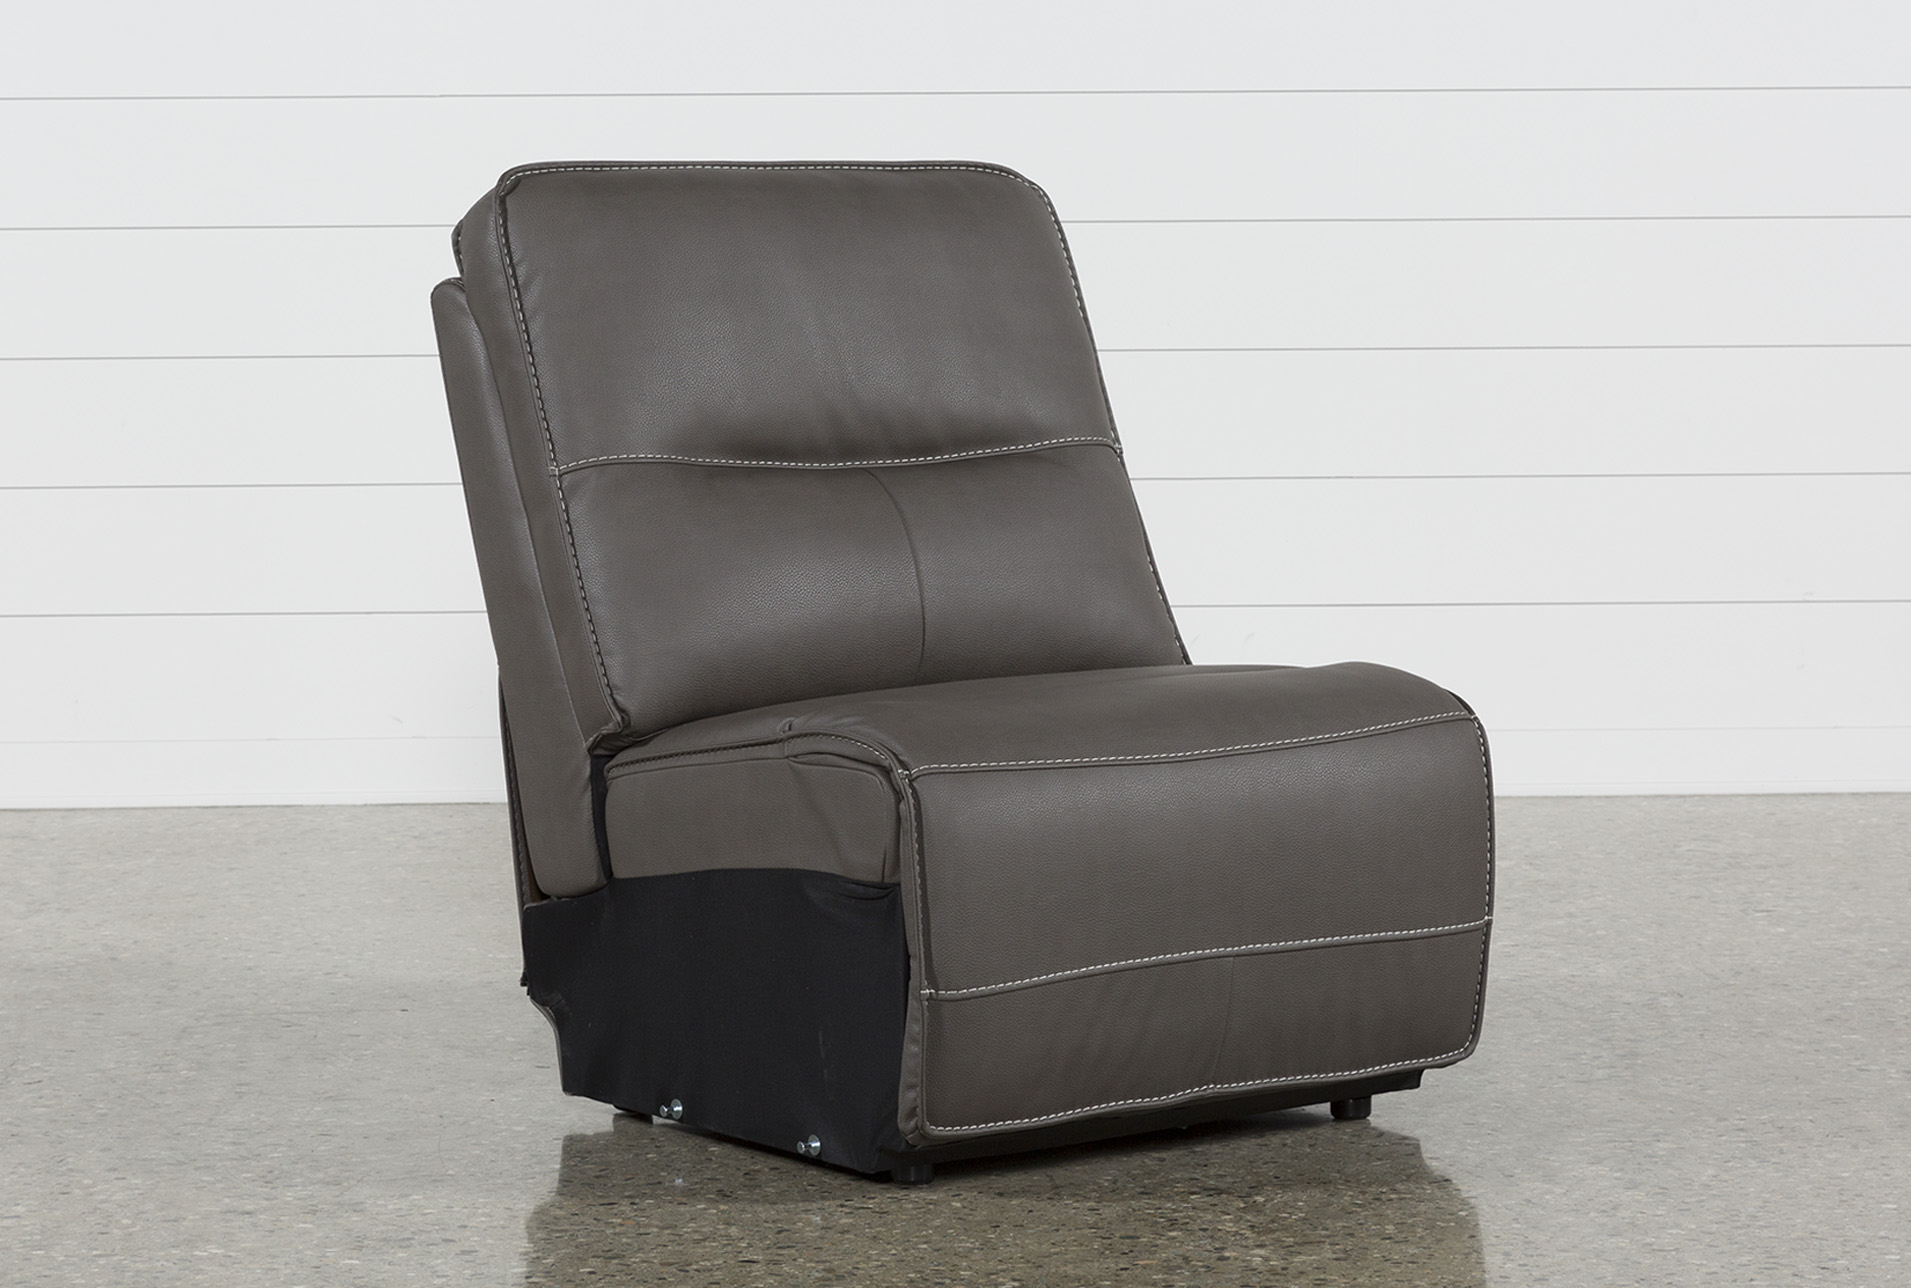 Marcus Grey Armless Chair (Qty: 1) Has Been Successfully Added To Your Cart.